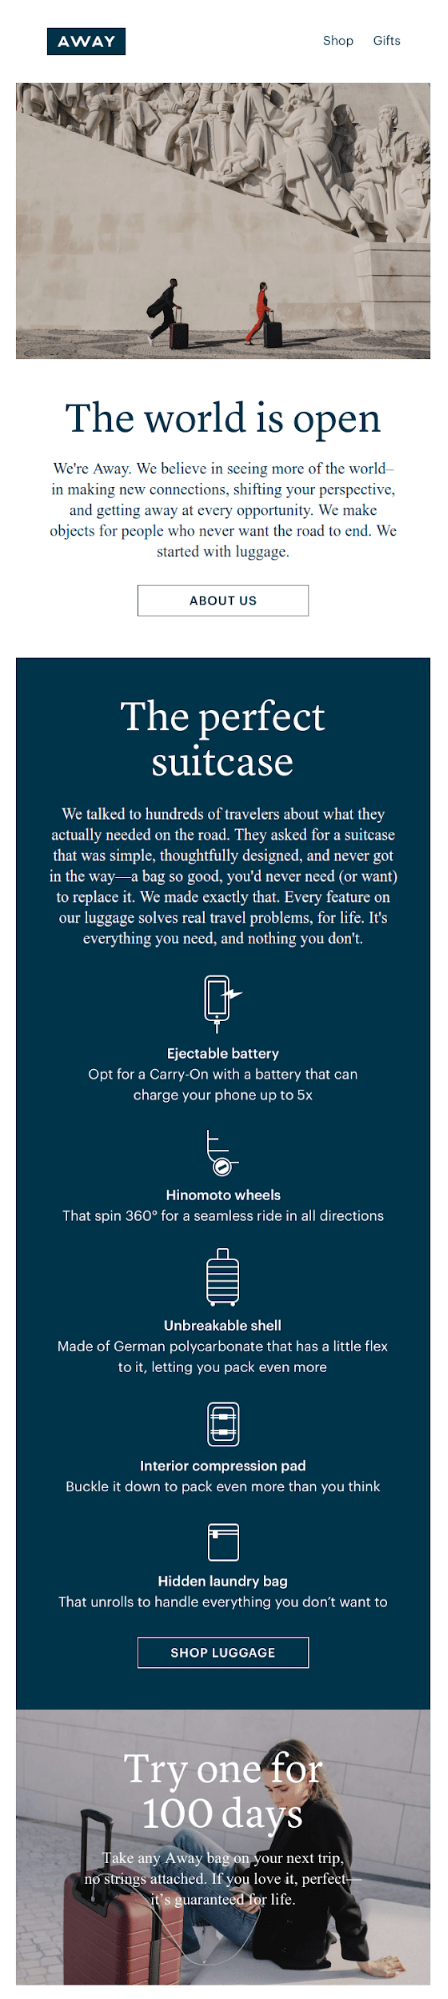 Example of storytelling in an email campaign from AWAY